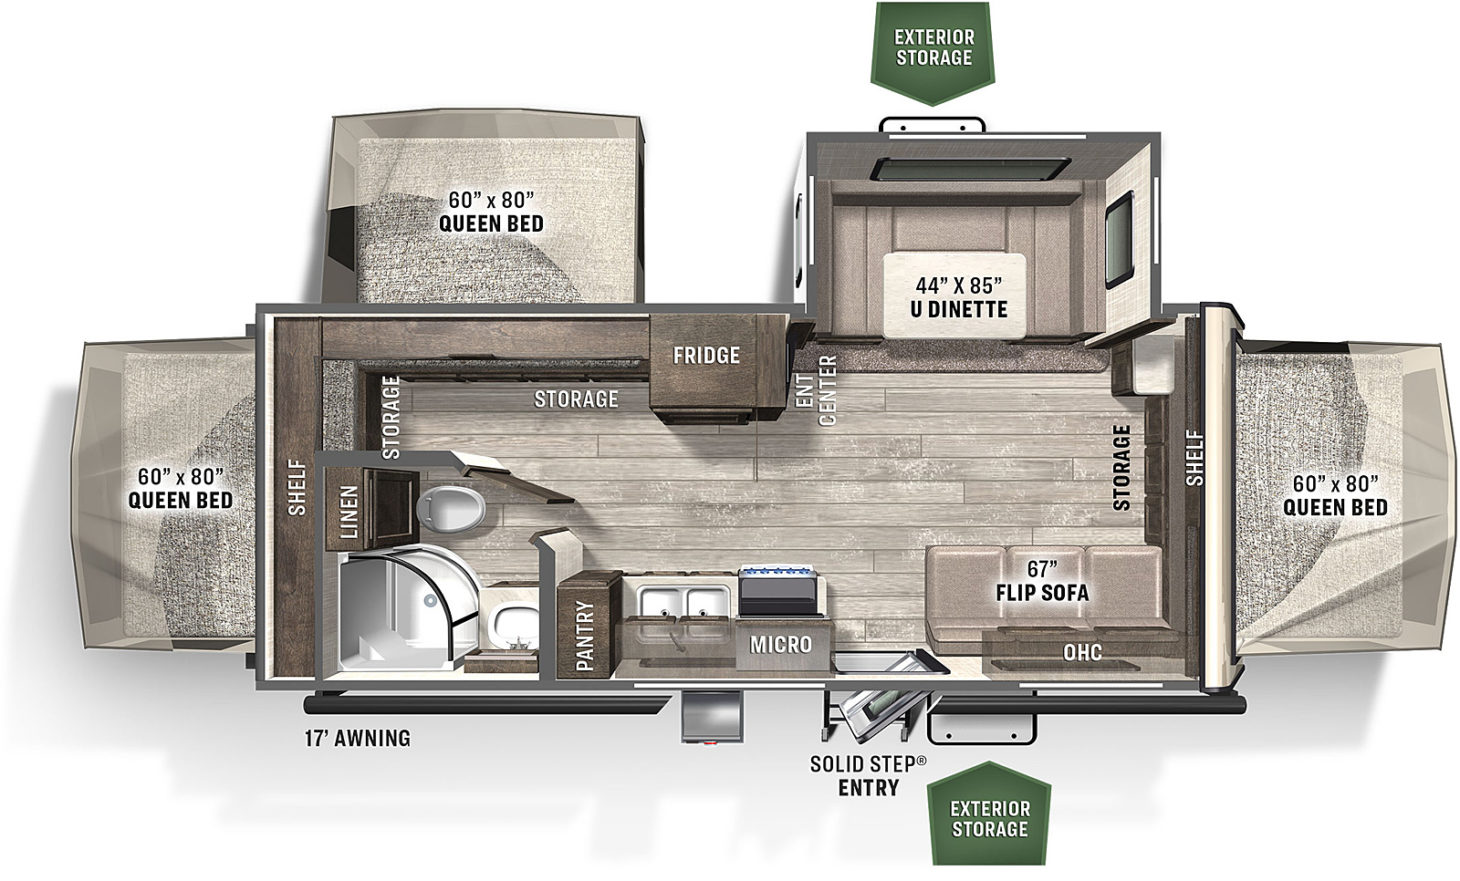 Floorplan for a hybrid RV featuring three queen-sized beds